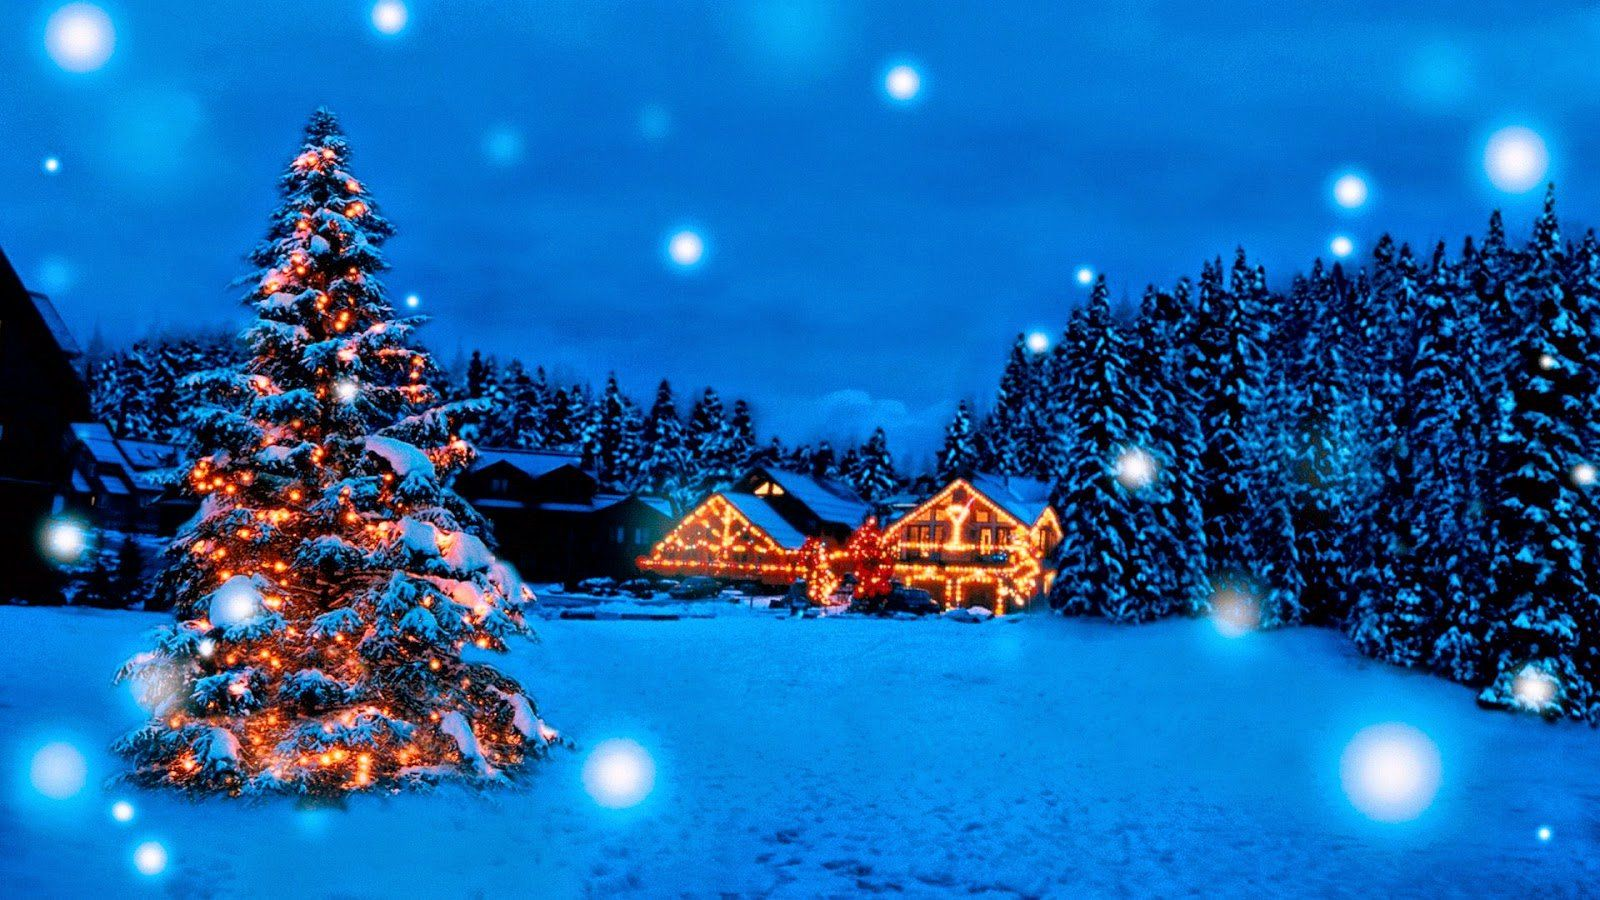 Free Christmas Desktop Wallpaper Luxury Desktop Quality Hd Wallpapers 1080p Free Download Christmas Desktop Wallpaper Christmas Desktop Christmas Wallpaper Hd